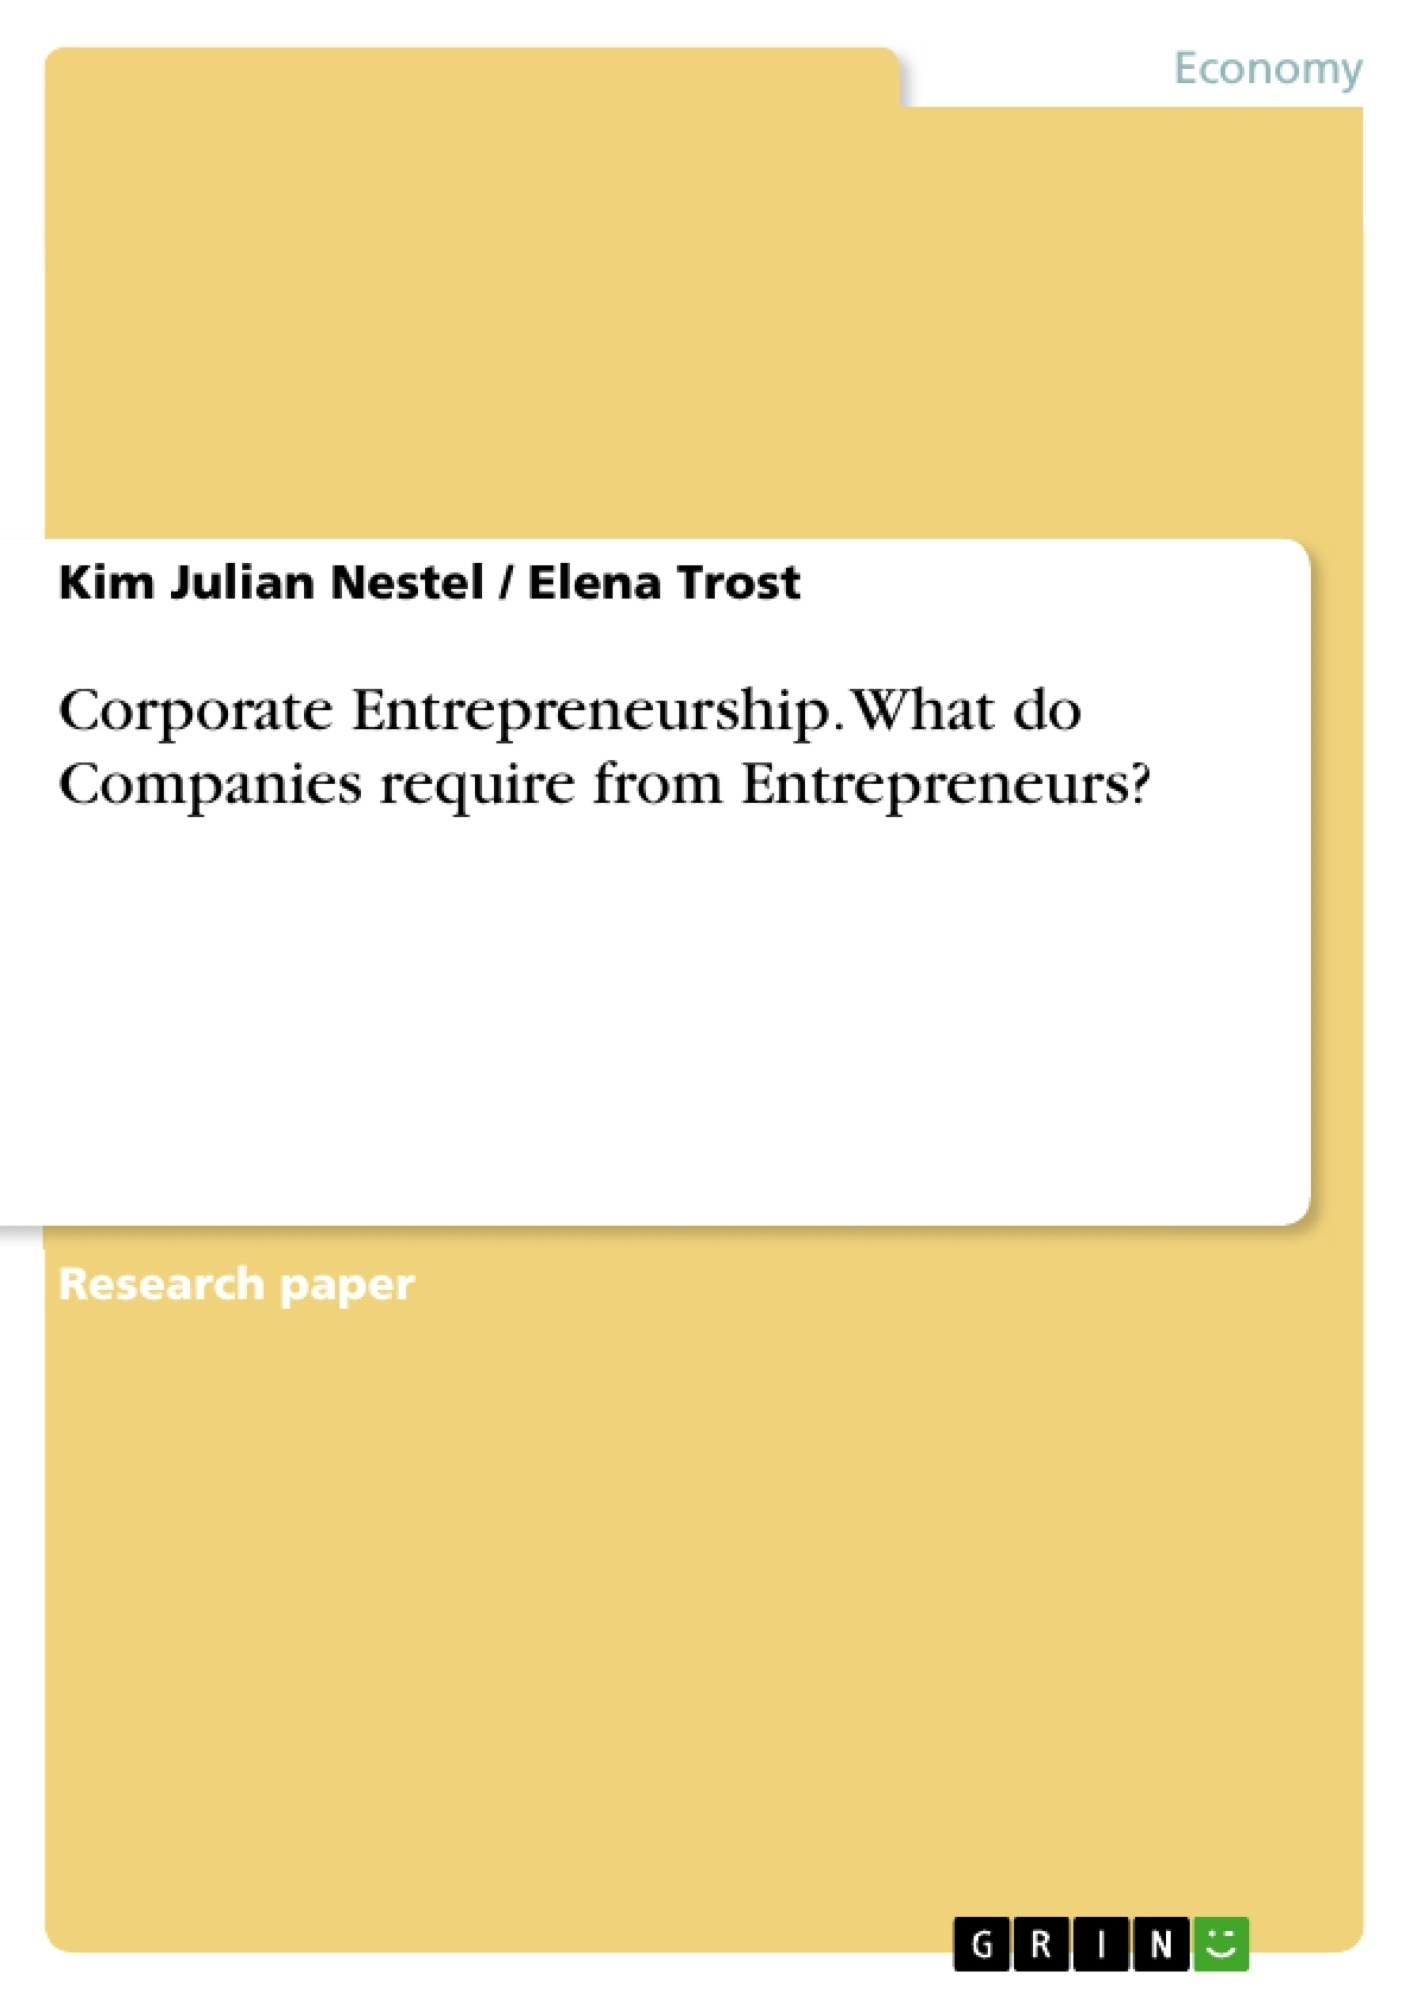 Title: Corporate Entrepreneurship. What do Companies require from Entrepreneurs?